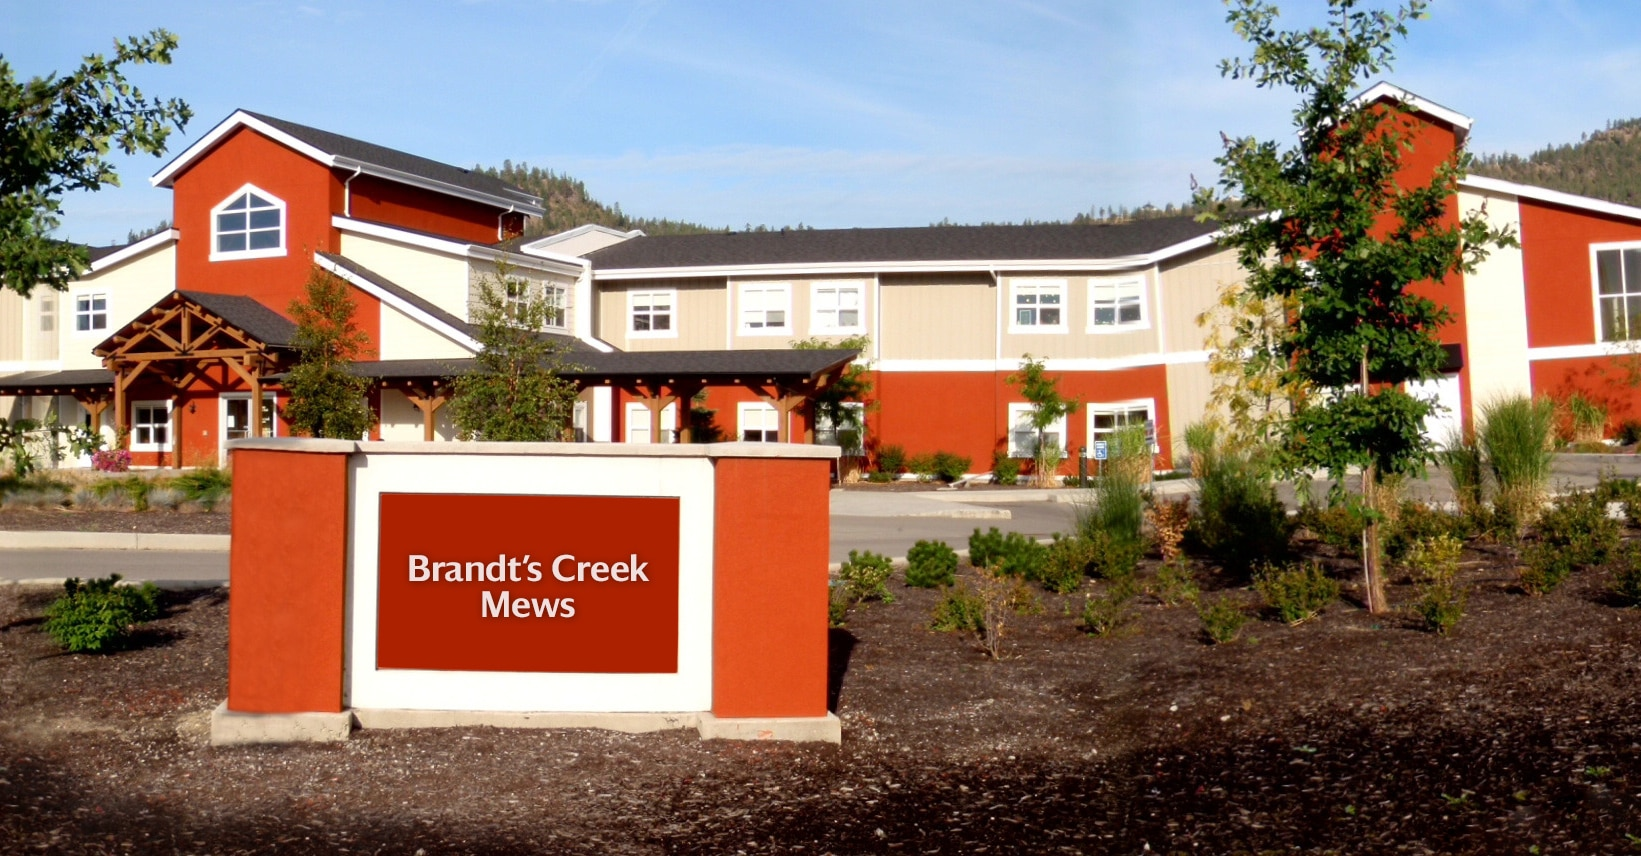 Brandt's Creek Mews